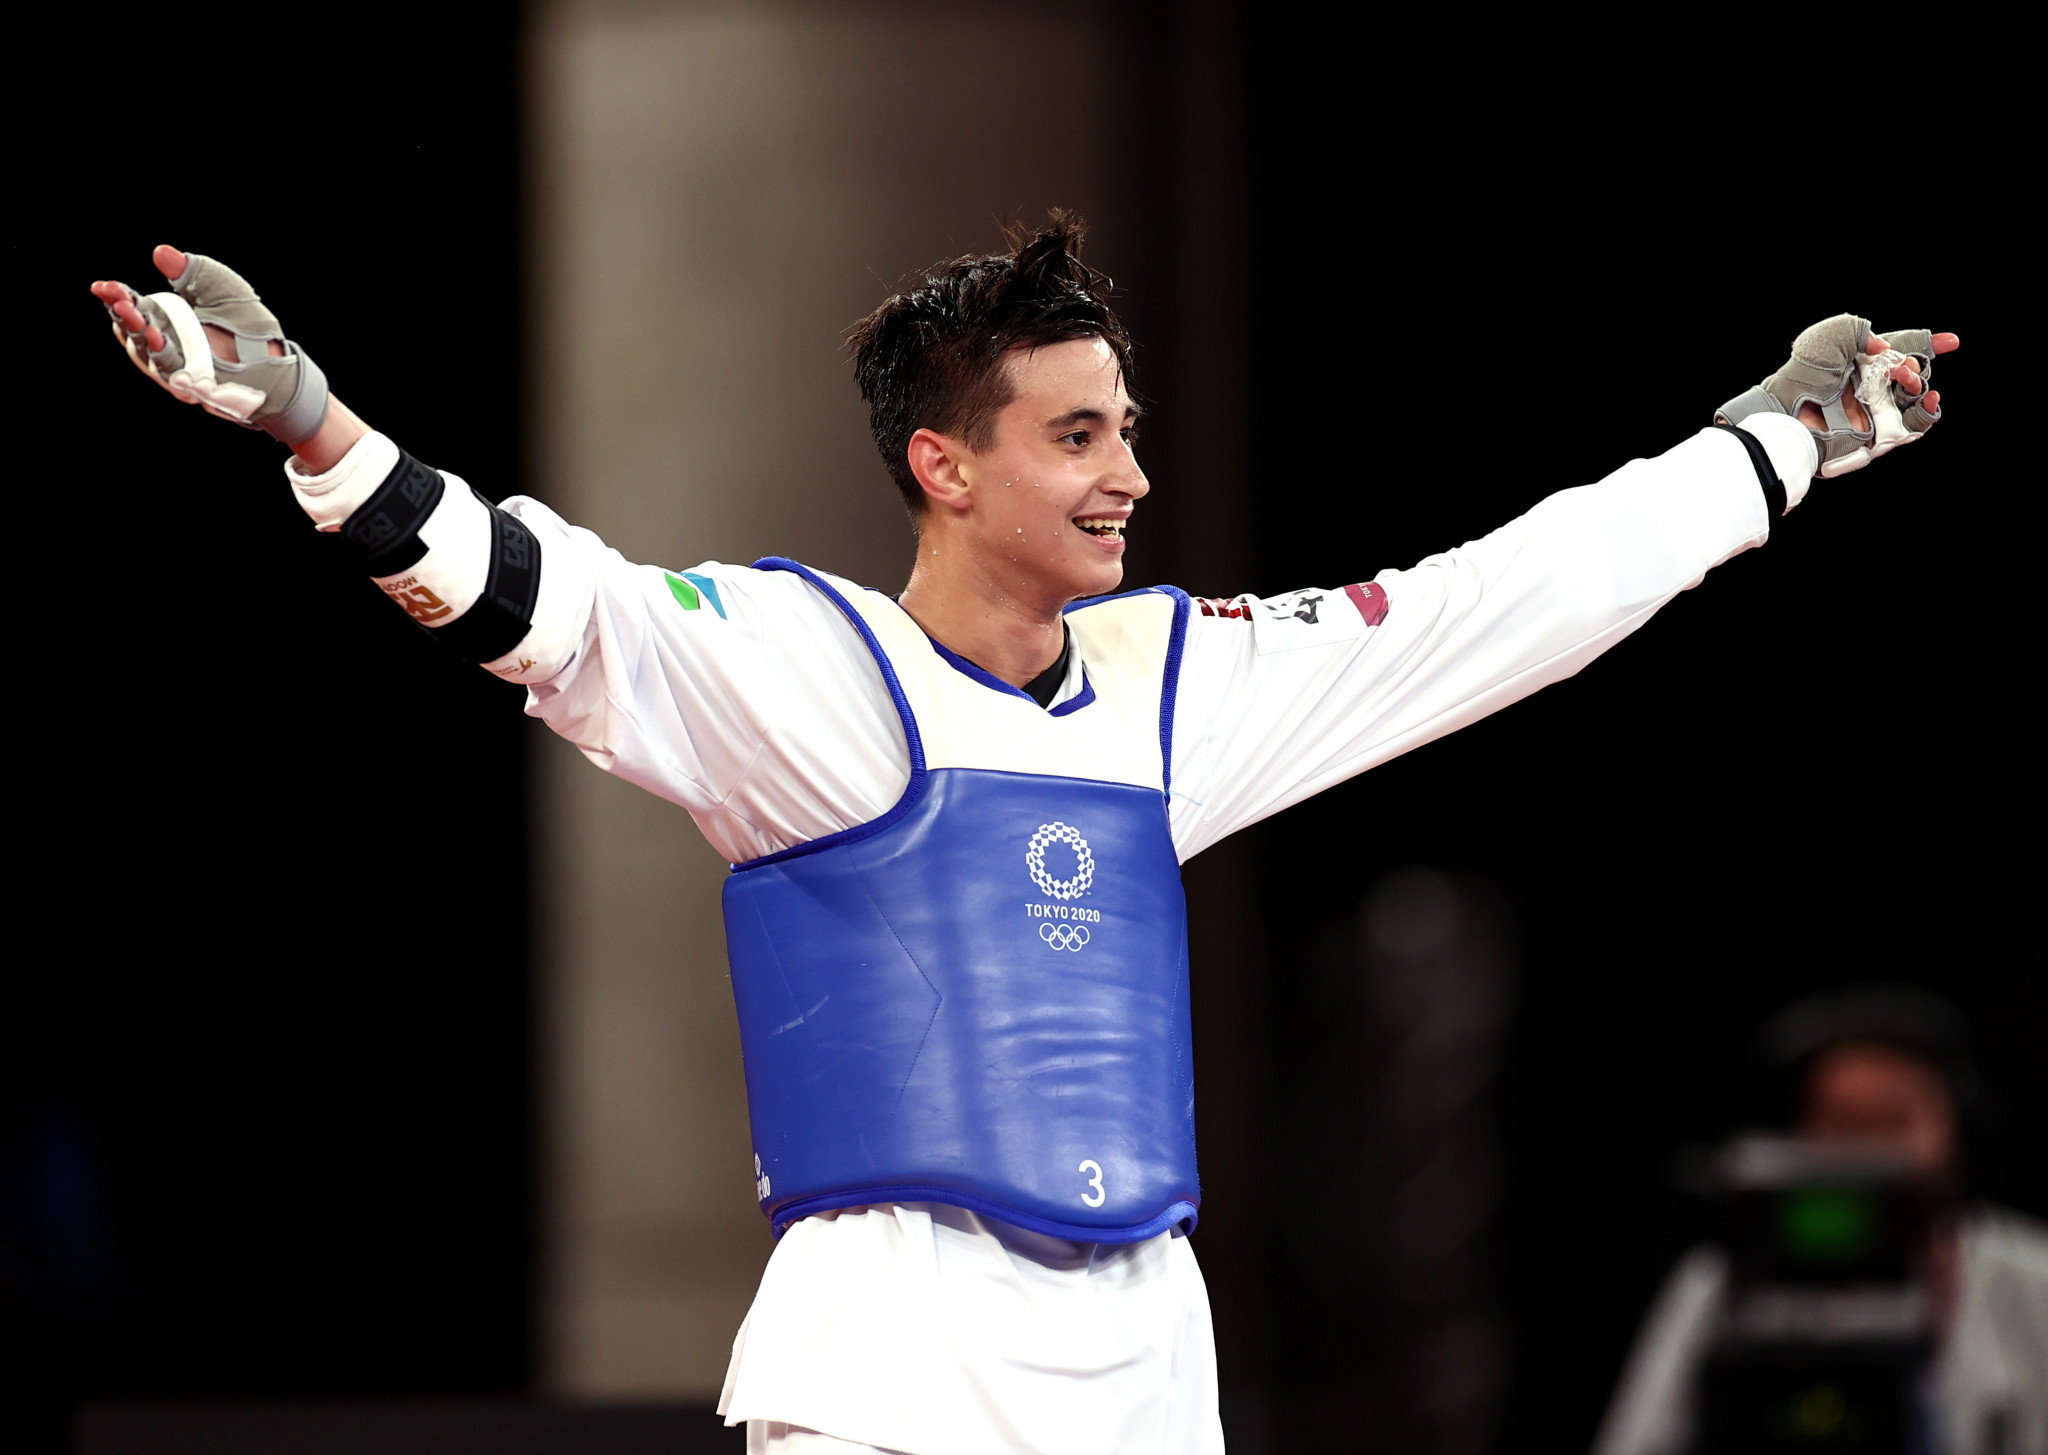 Rashitov and Zolotic win Olympic taekwondo titles as refugee team's Alizadeh agonisingly misses bronze